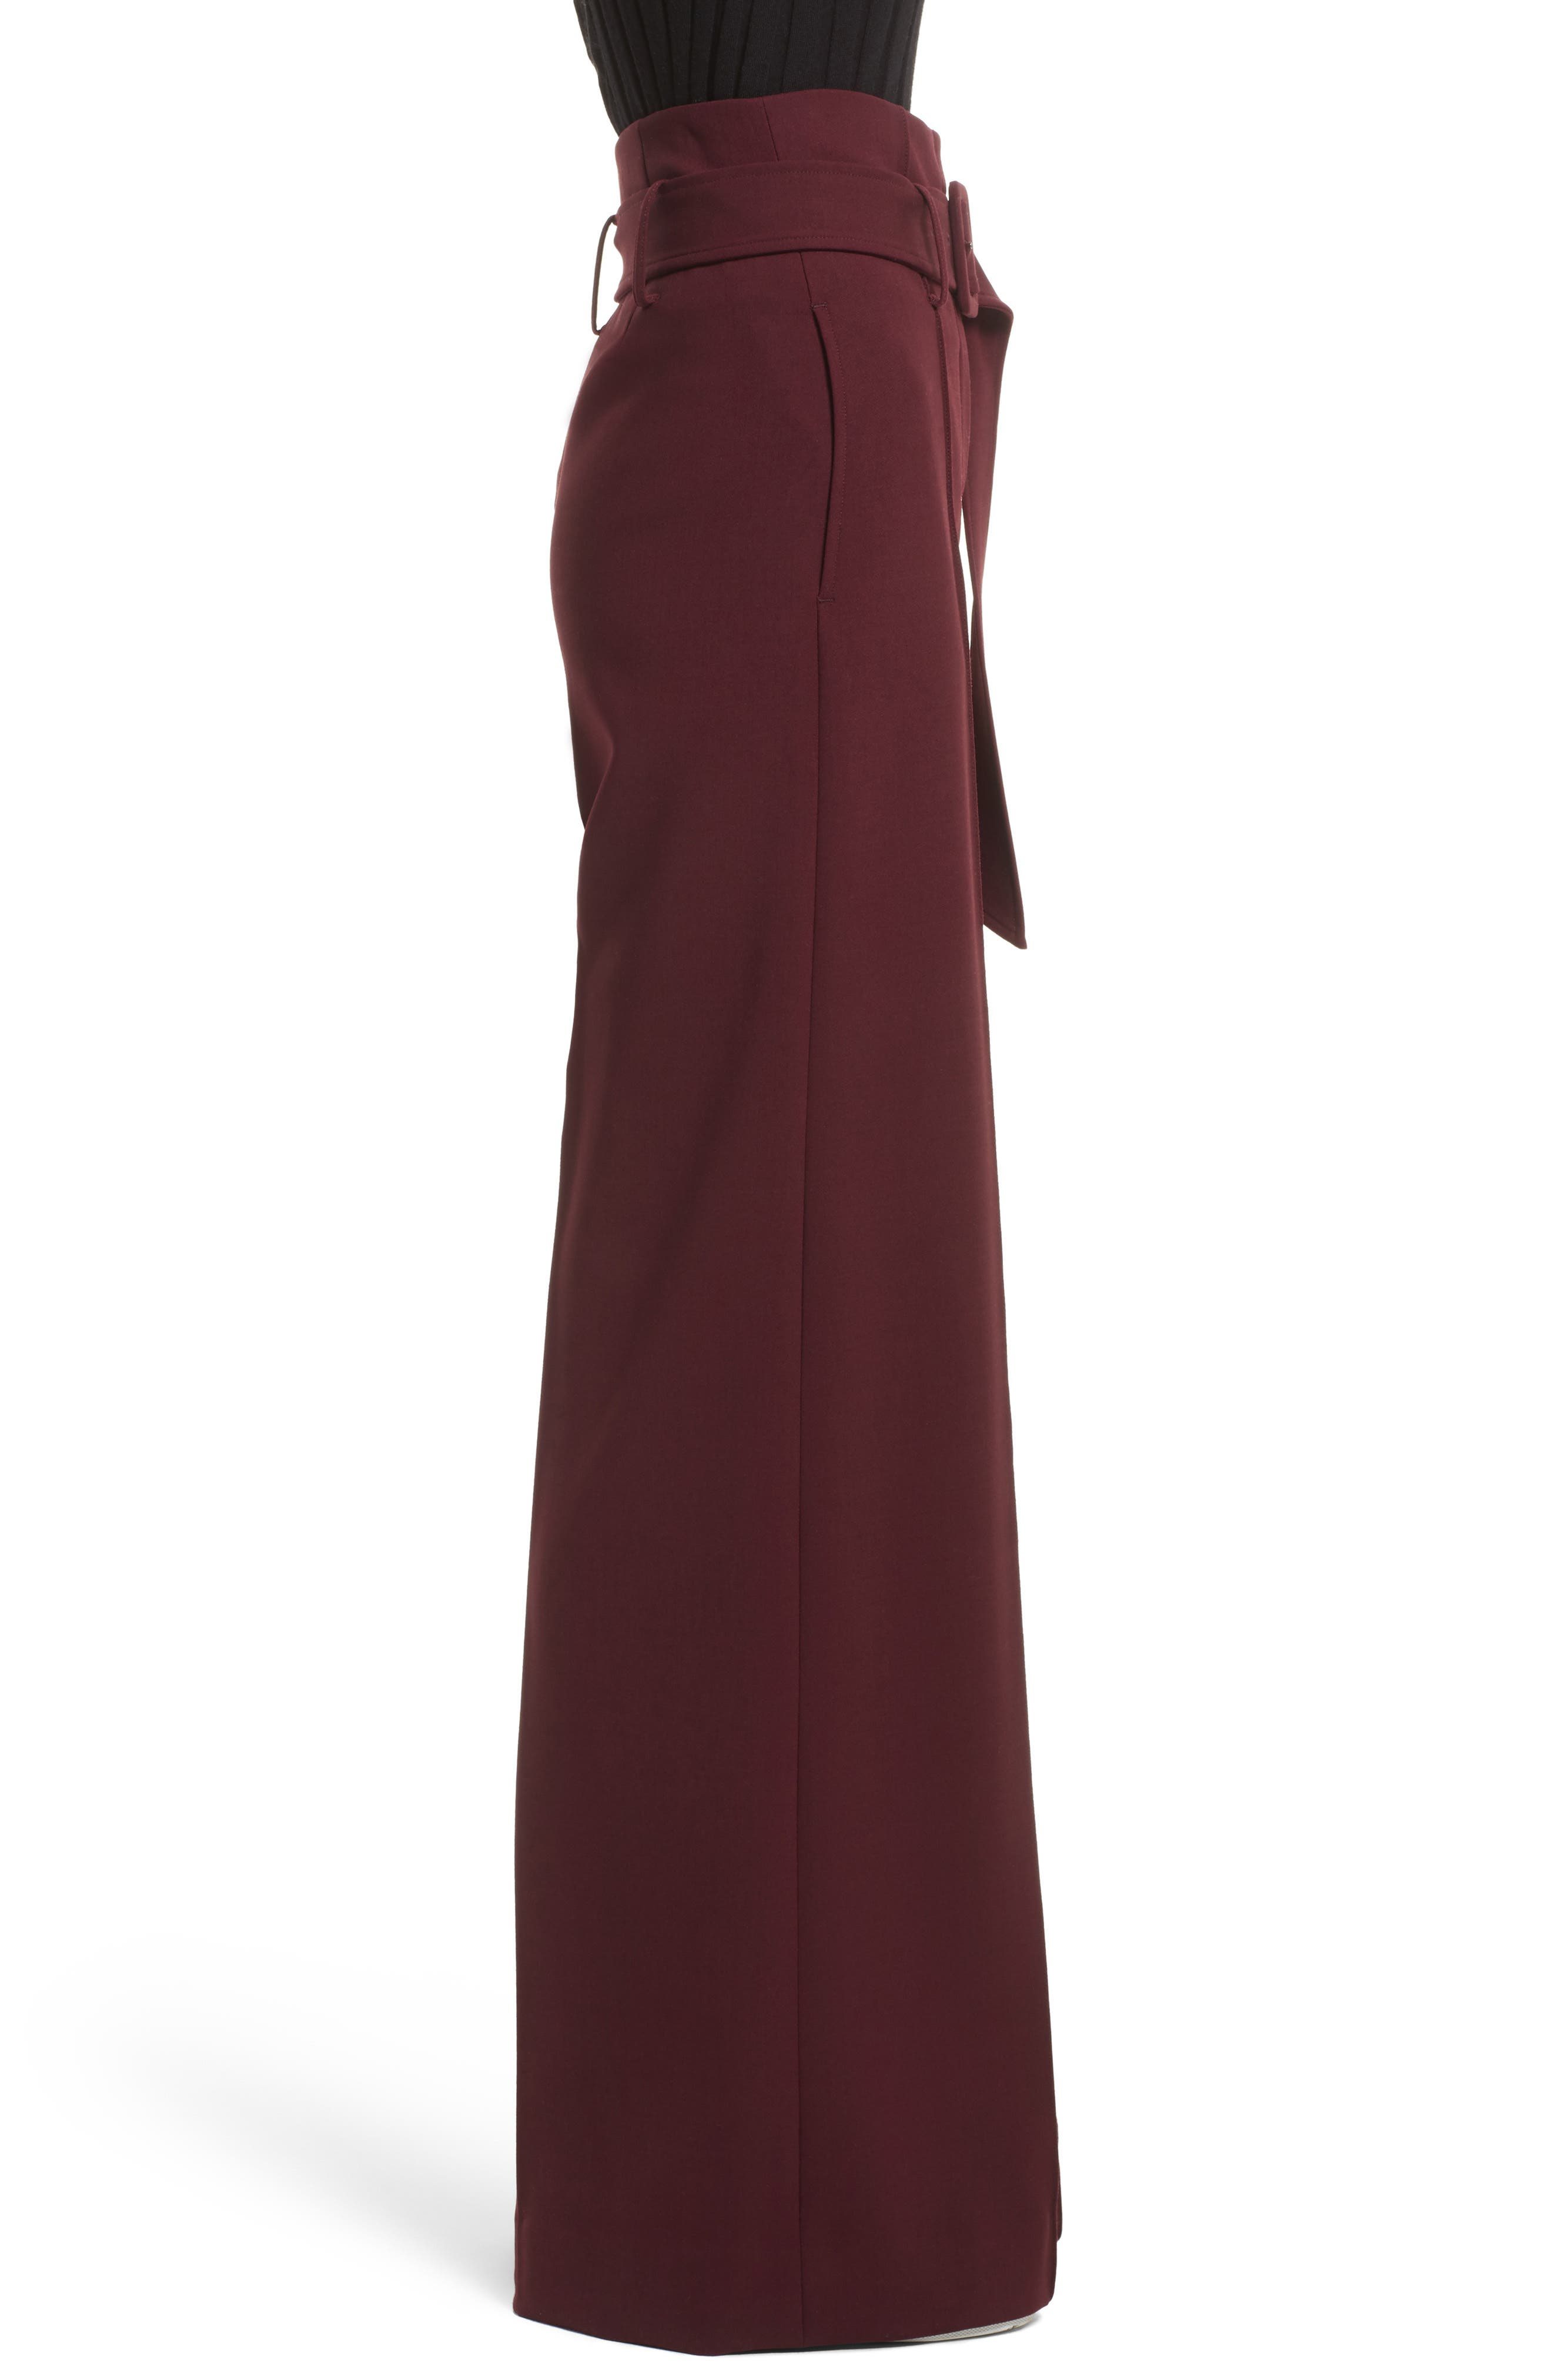 Camogie High Waist Belted Pants,                             Alternate thumbnail 3, color,                             Dark Currant